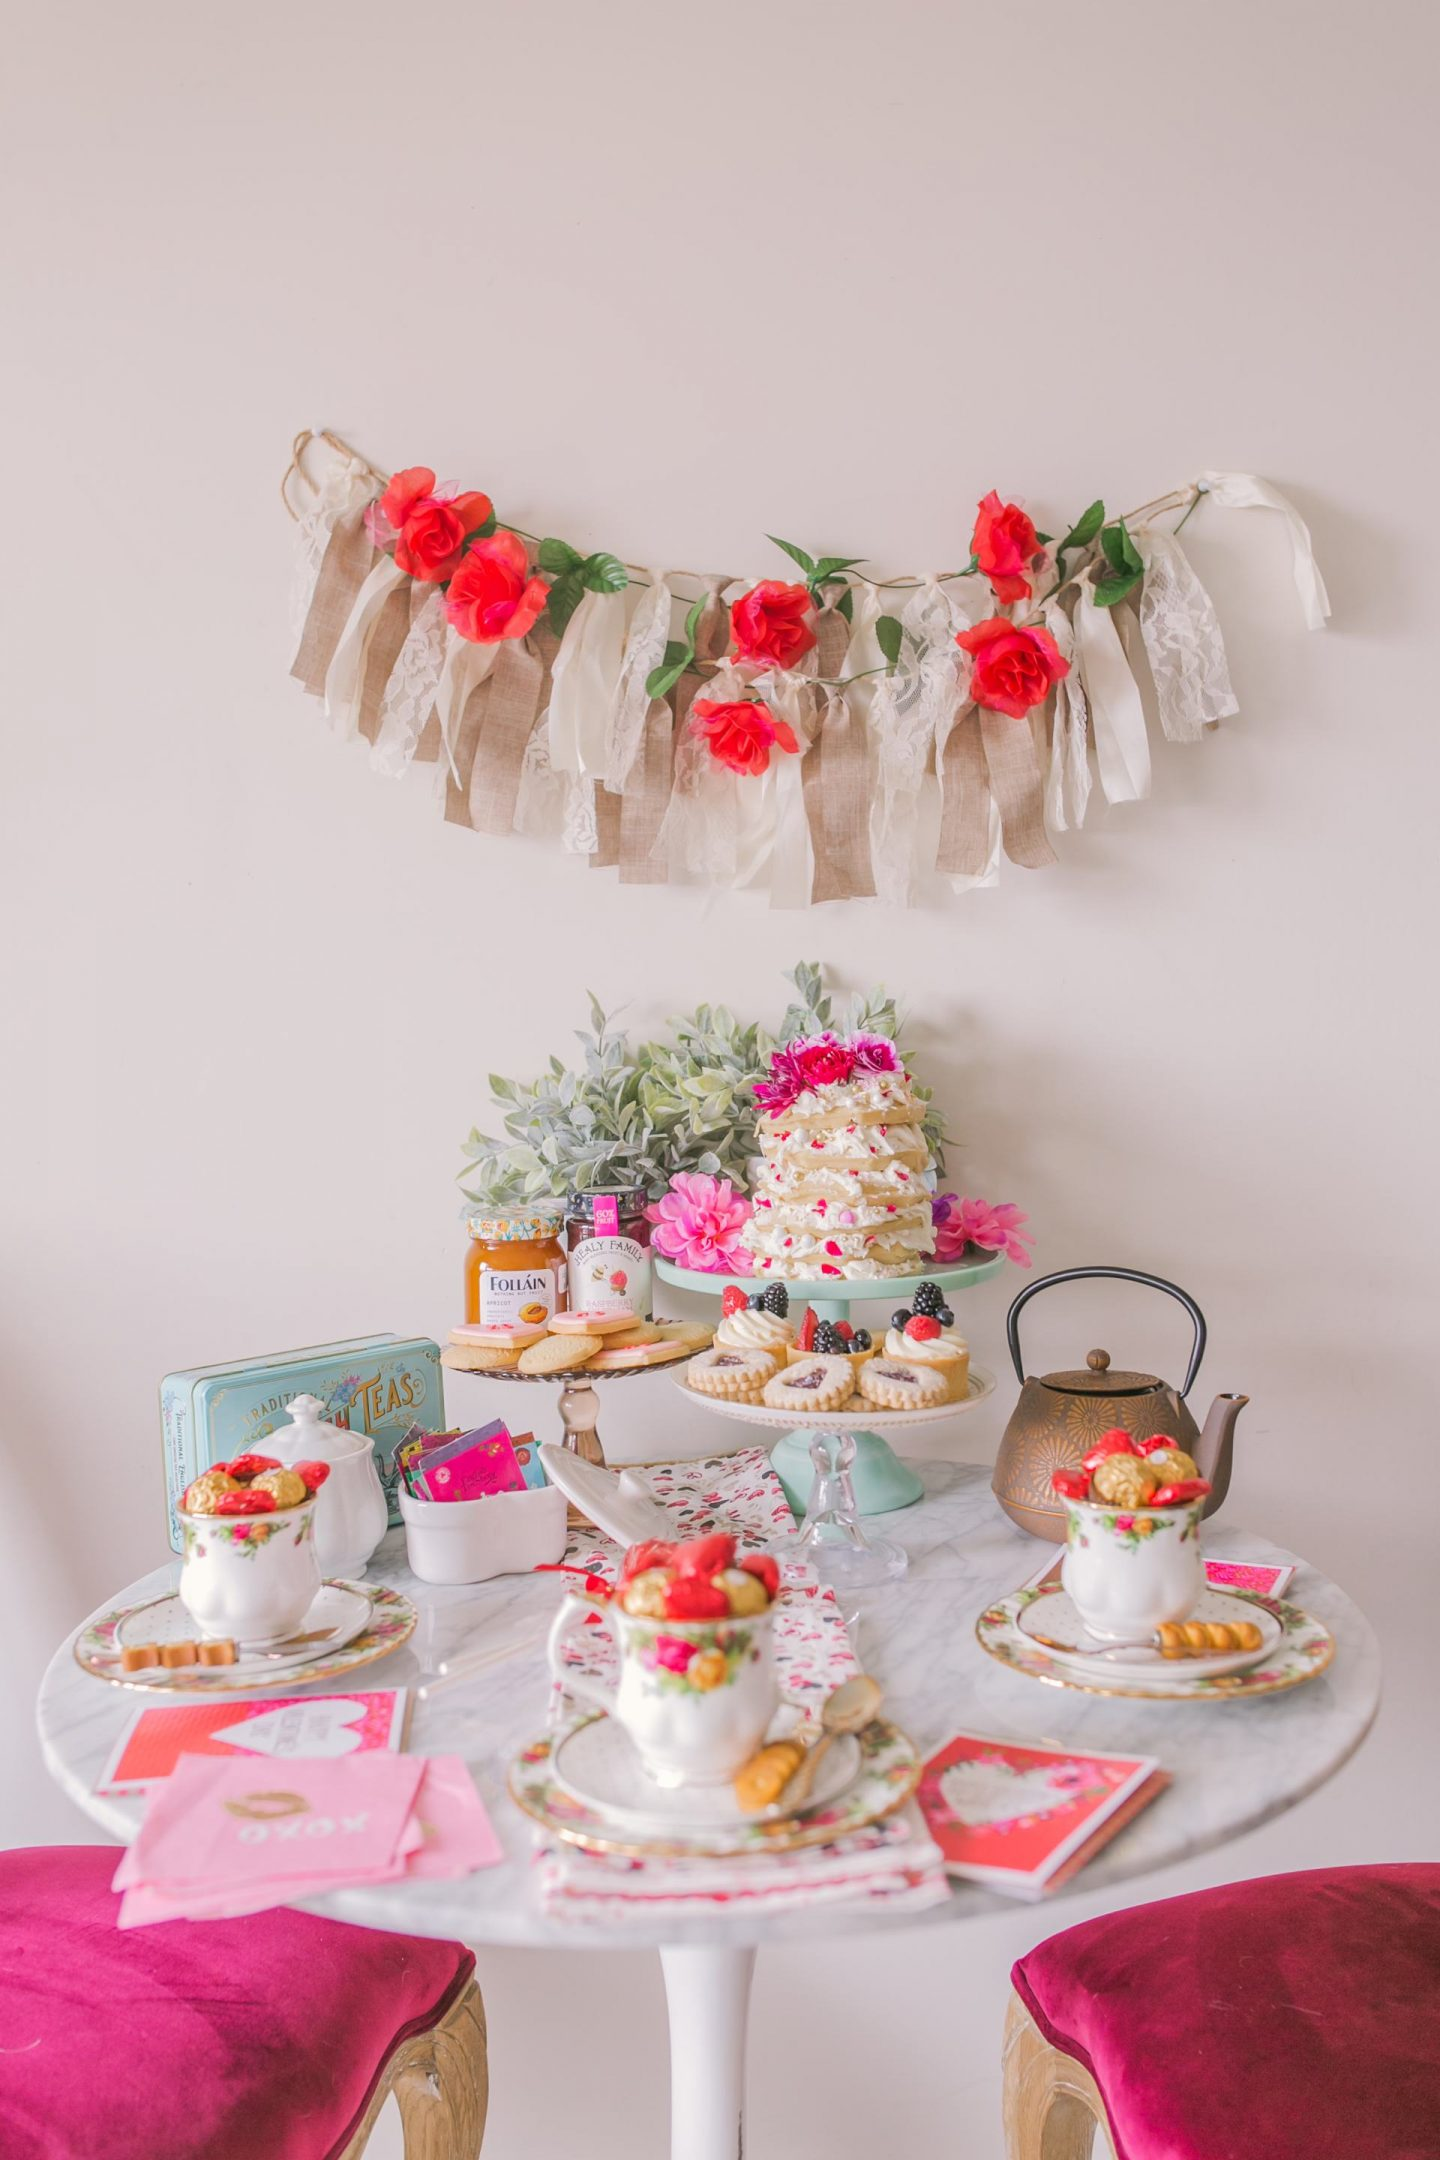 Hosting a Valentine's Day Afternoon Tea Party